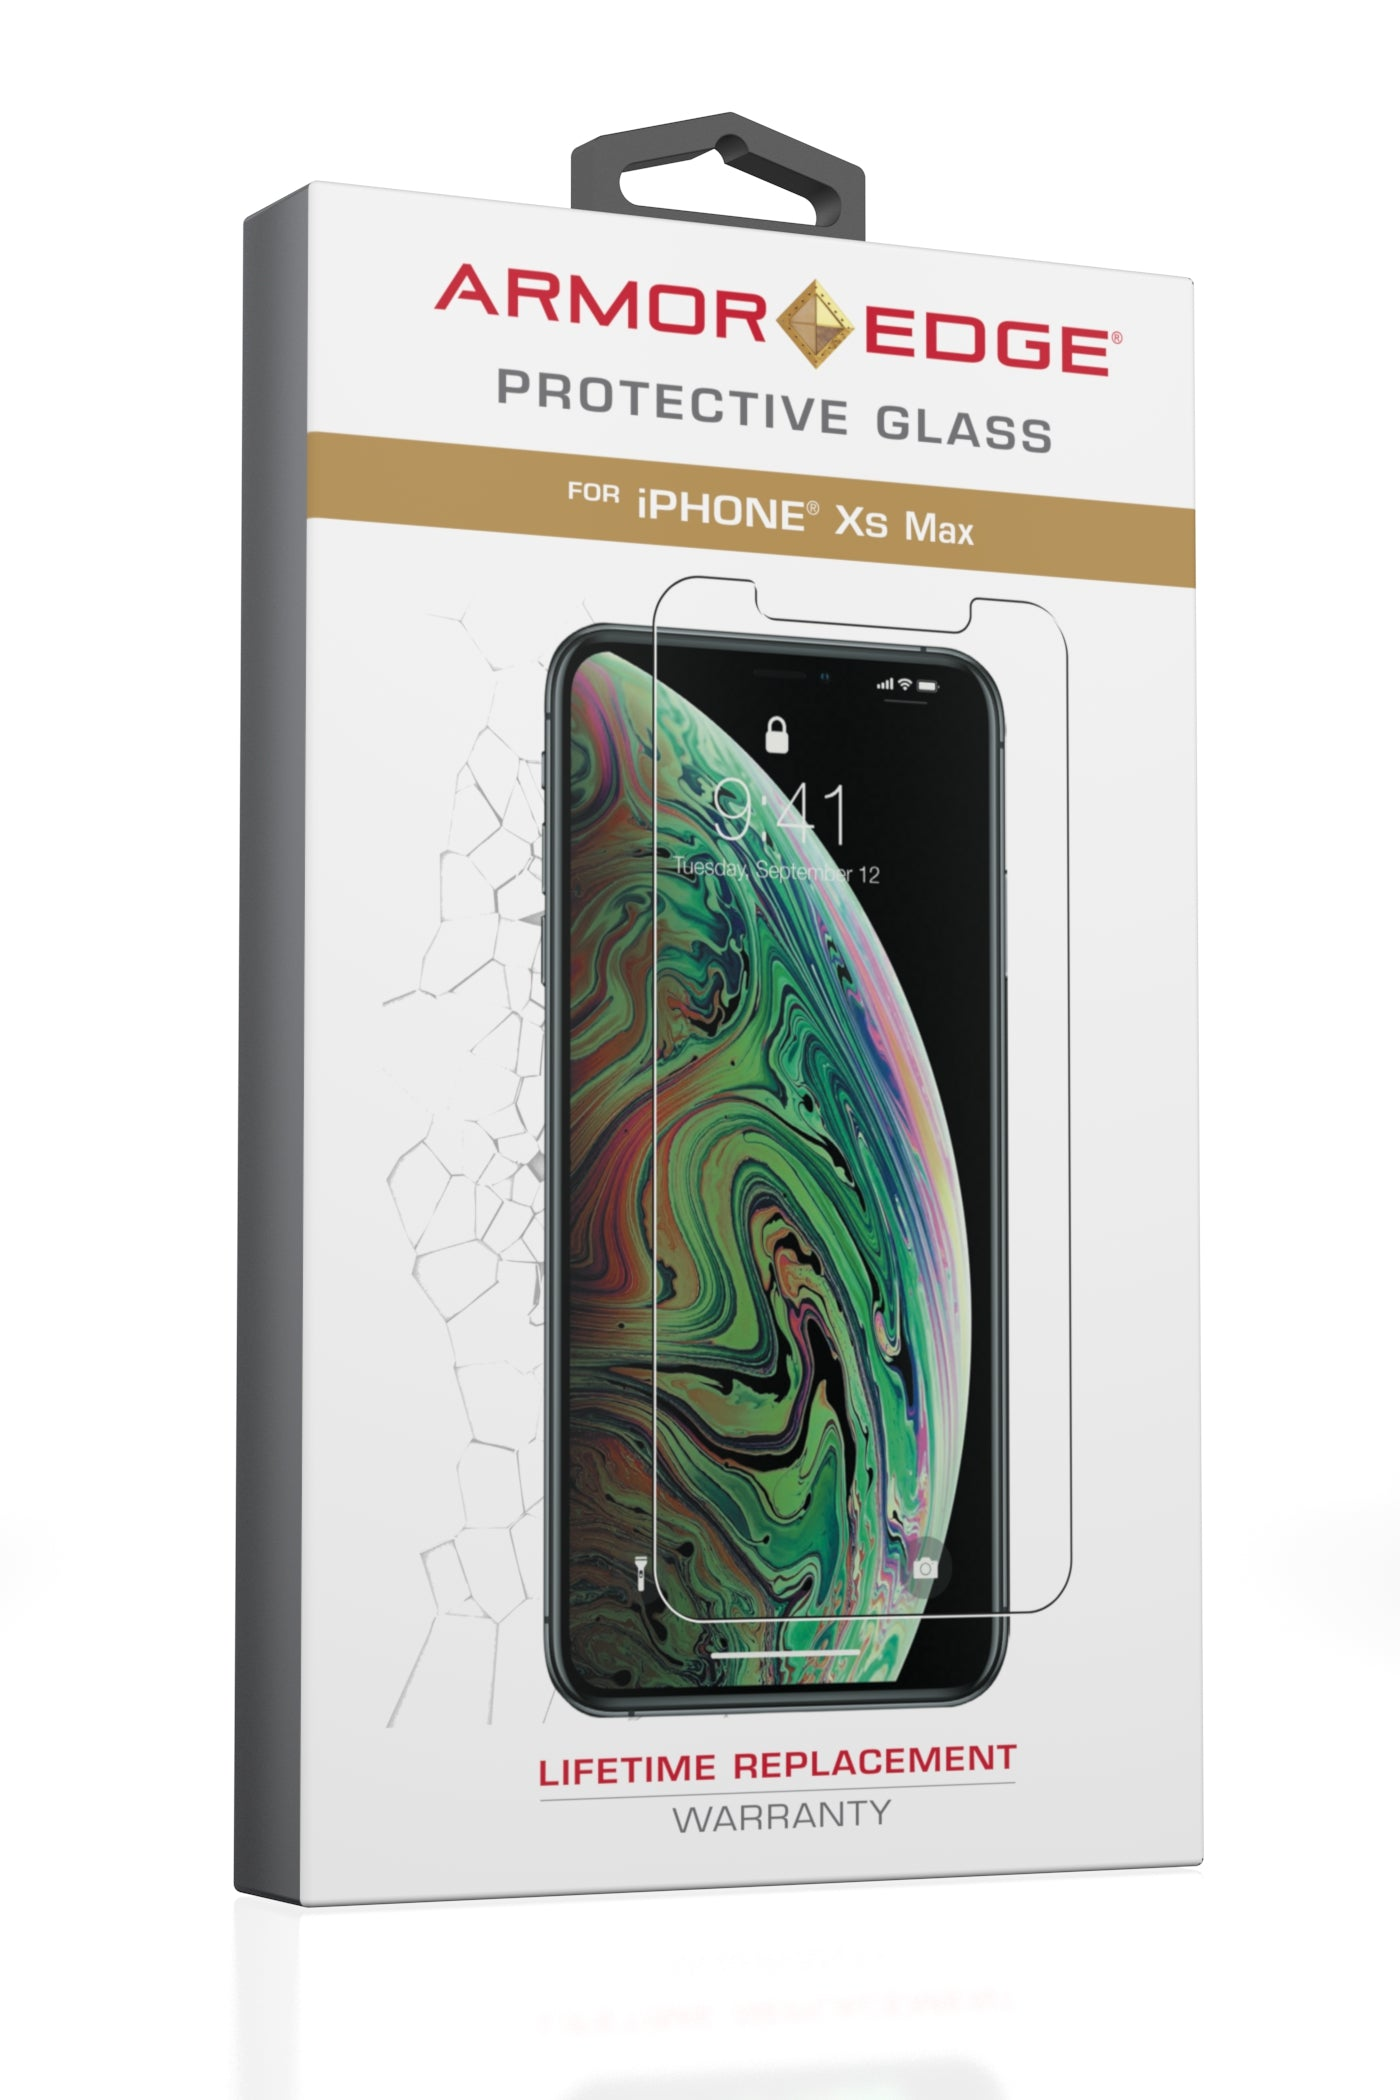 Armor Edge - Protective Glass for iPhone Xs Max